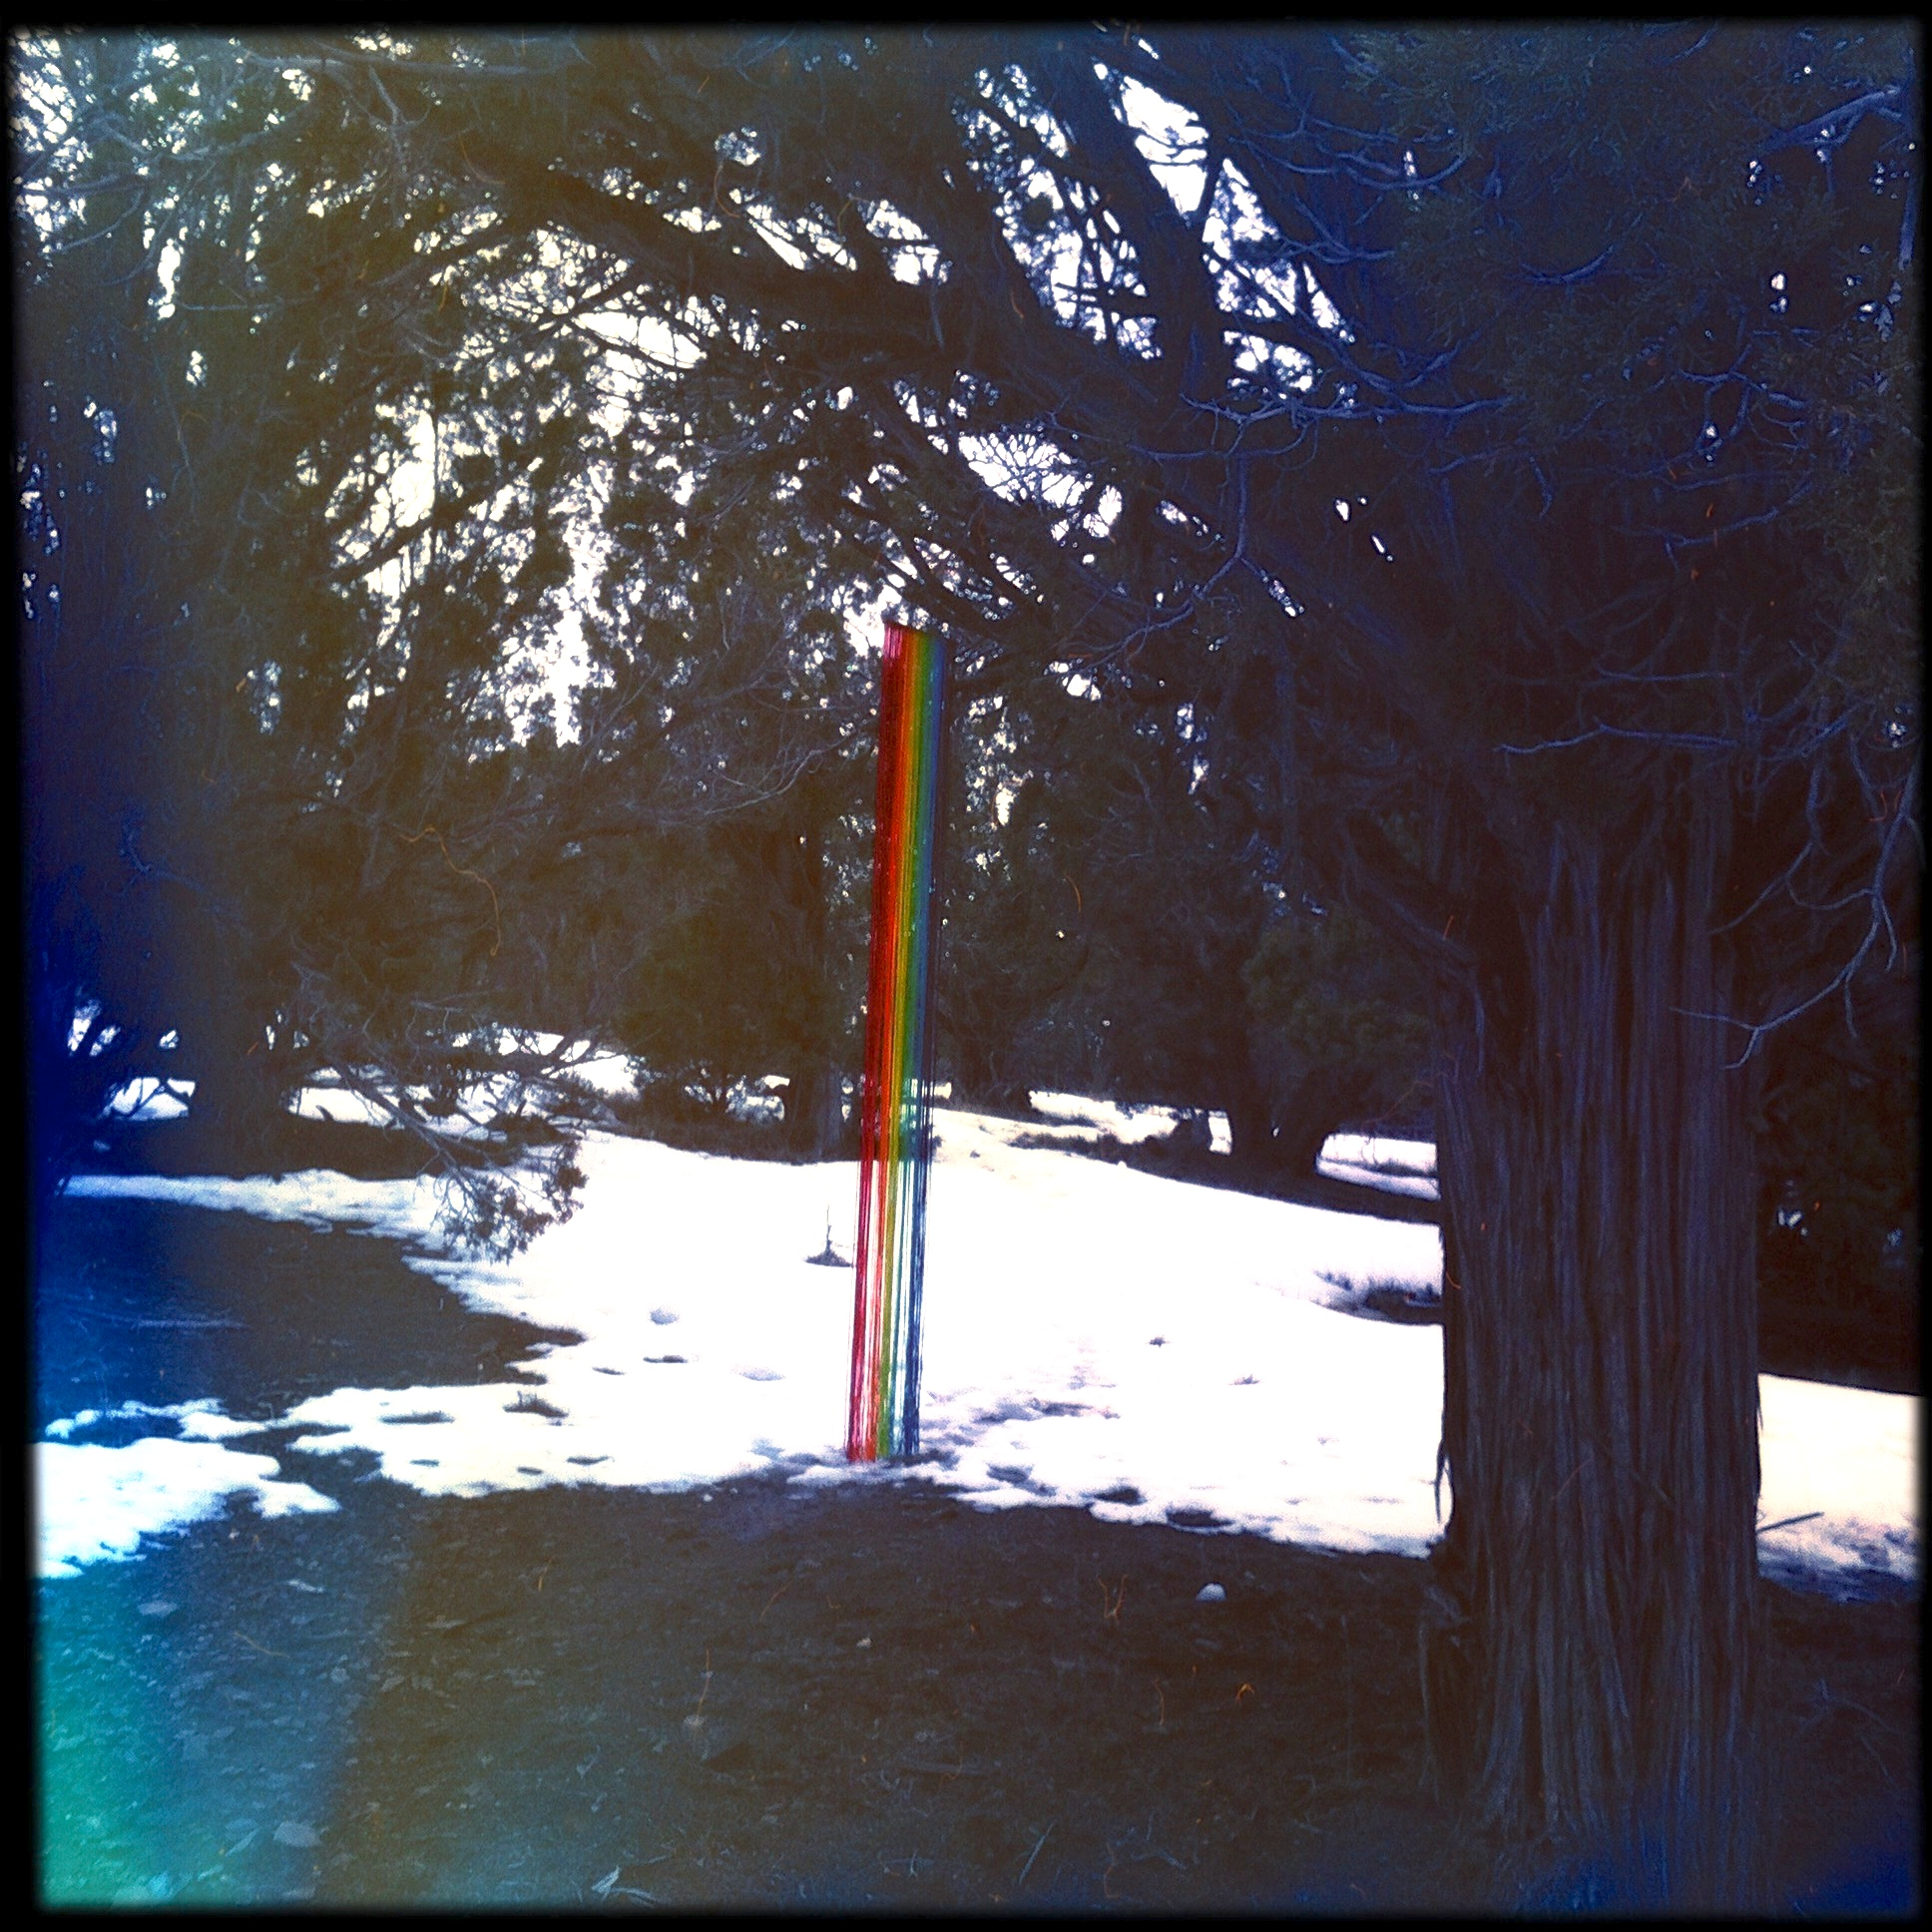 The next day, when my friend showed up to walk, she brought a rainbow streamer, an accidental replacement, which we hung on the same twig where the banner gave up the ghost. It's the little things that make my day.